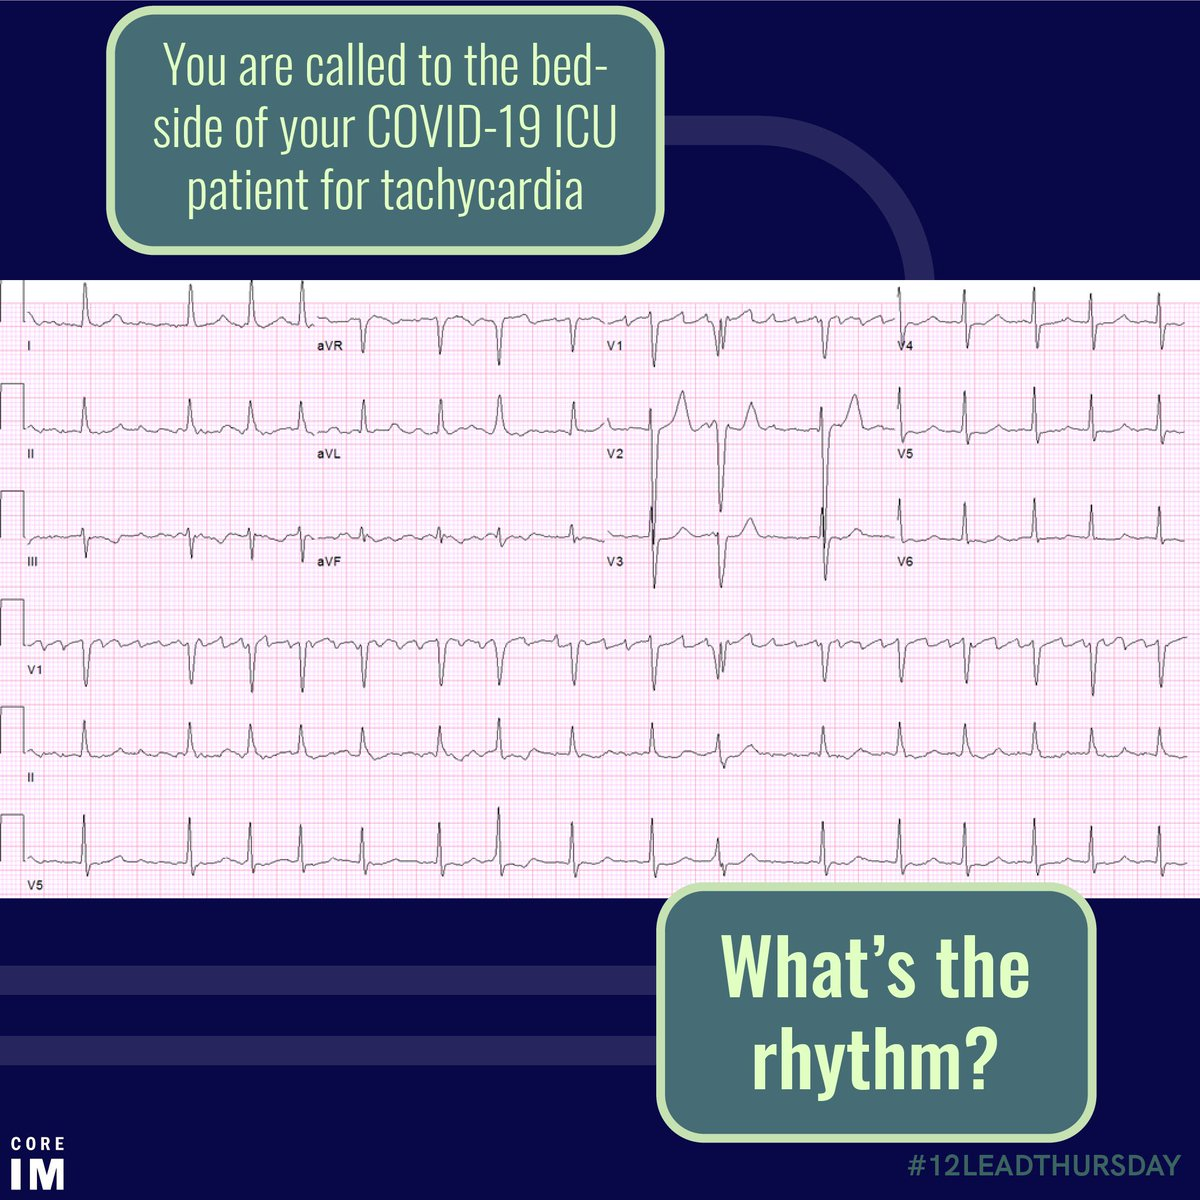 1/ Welcome back, #medtwitter, to the latest installment of #12LeadThursday - #covid19 edition! Let's put those calipers to work! Take a look at this ECG. Approach it systematically. What do you see?